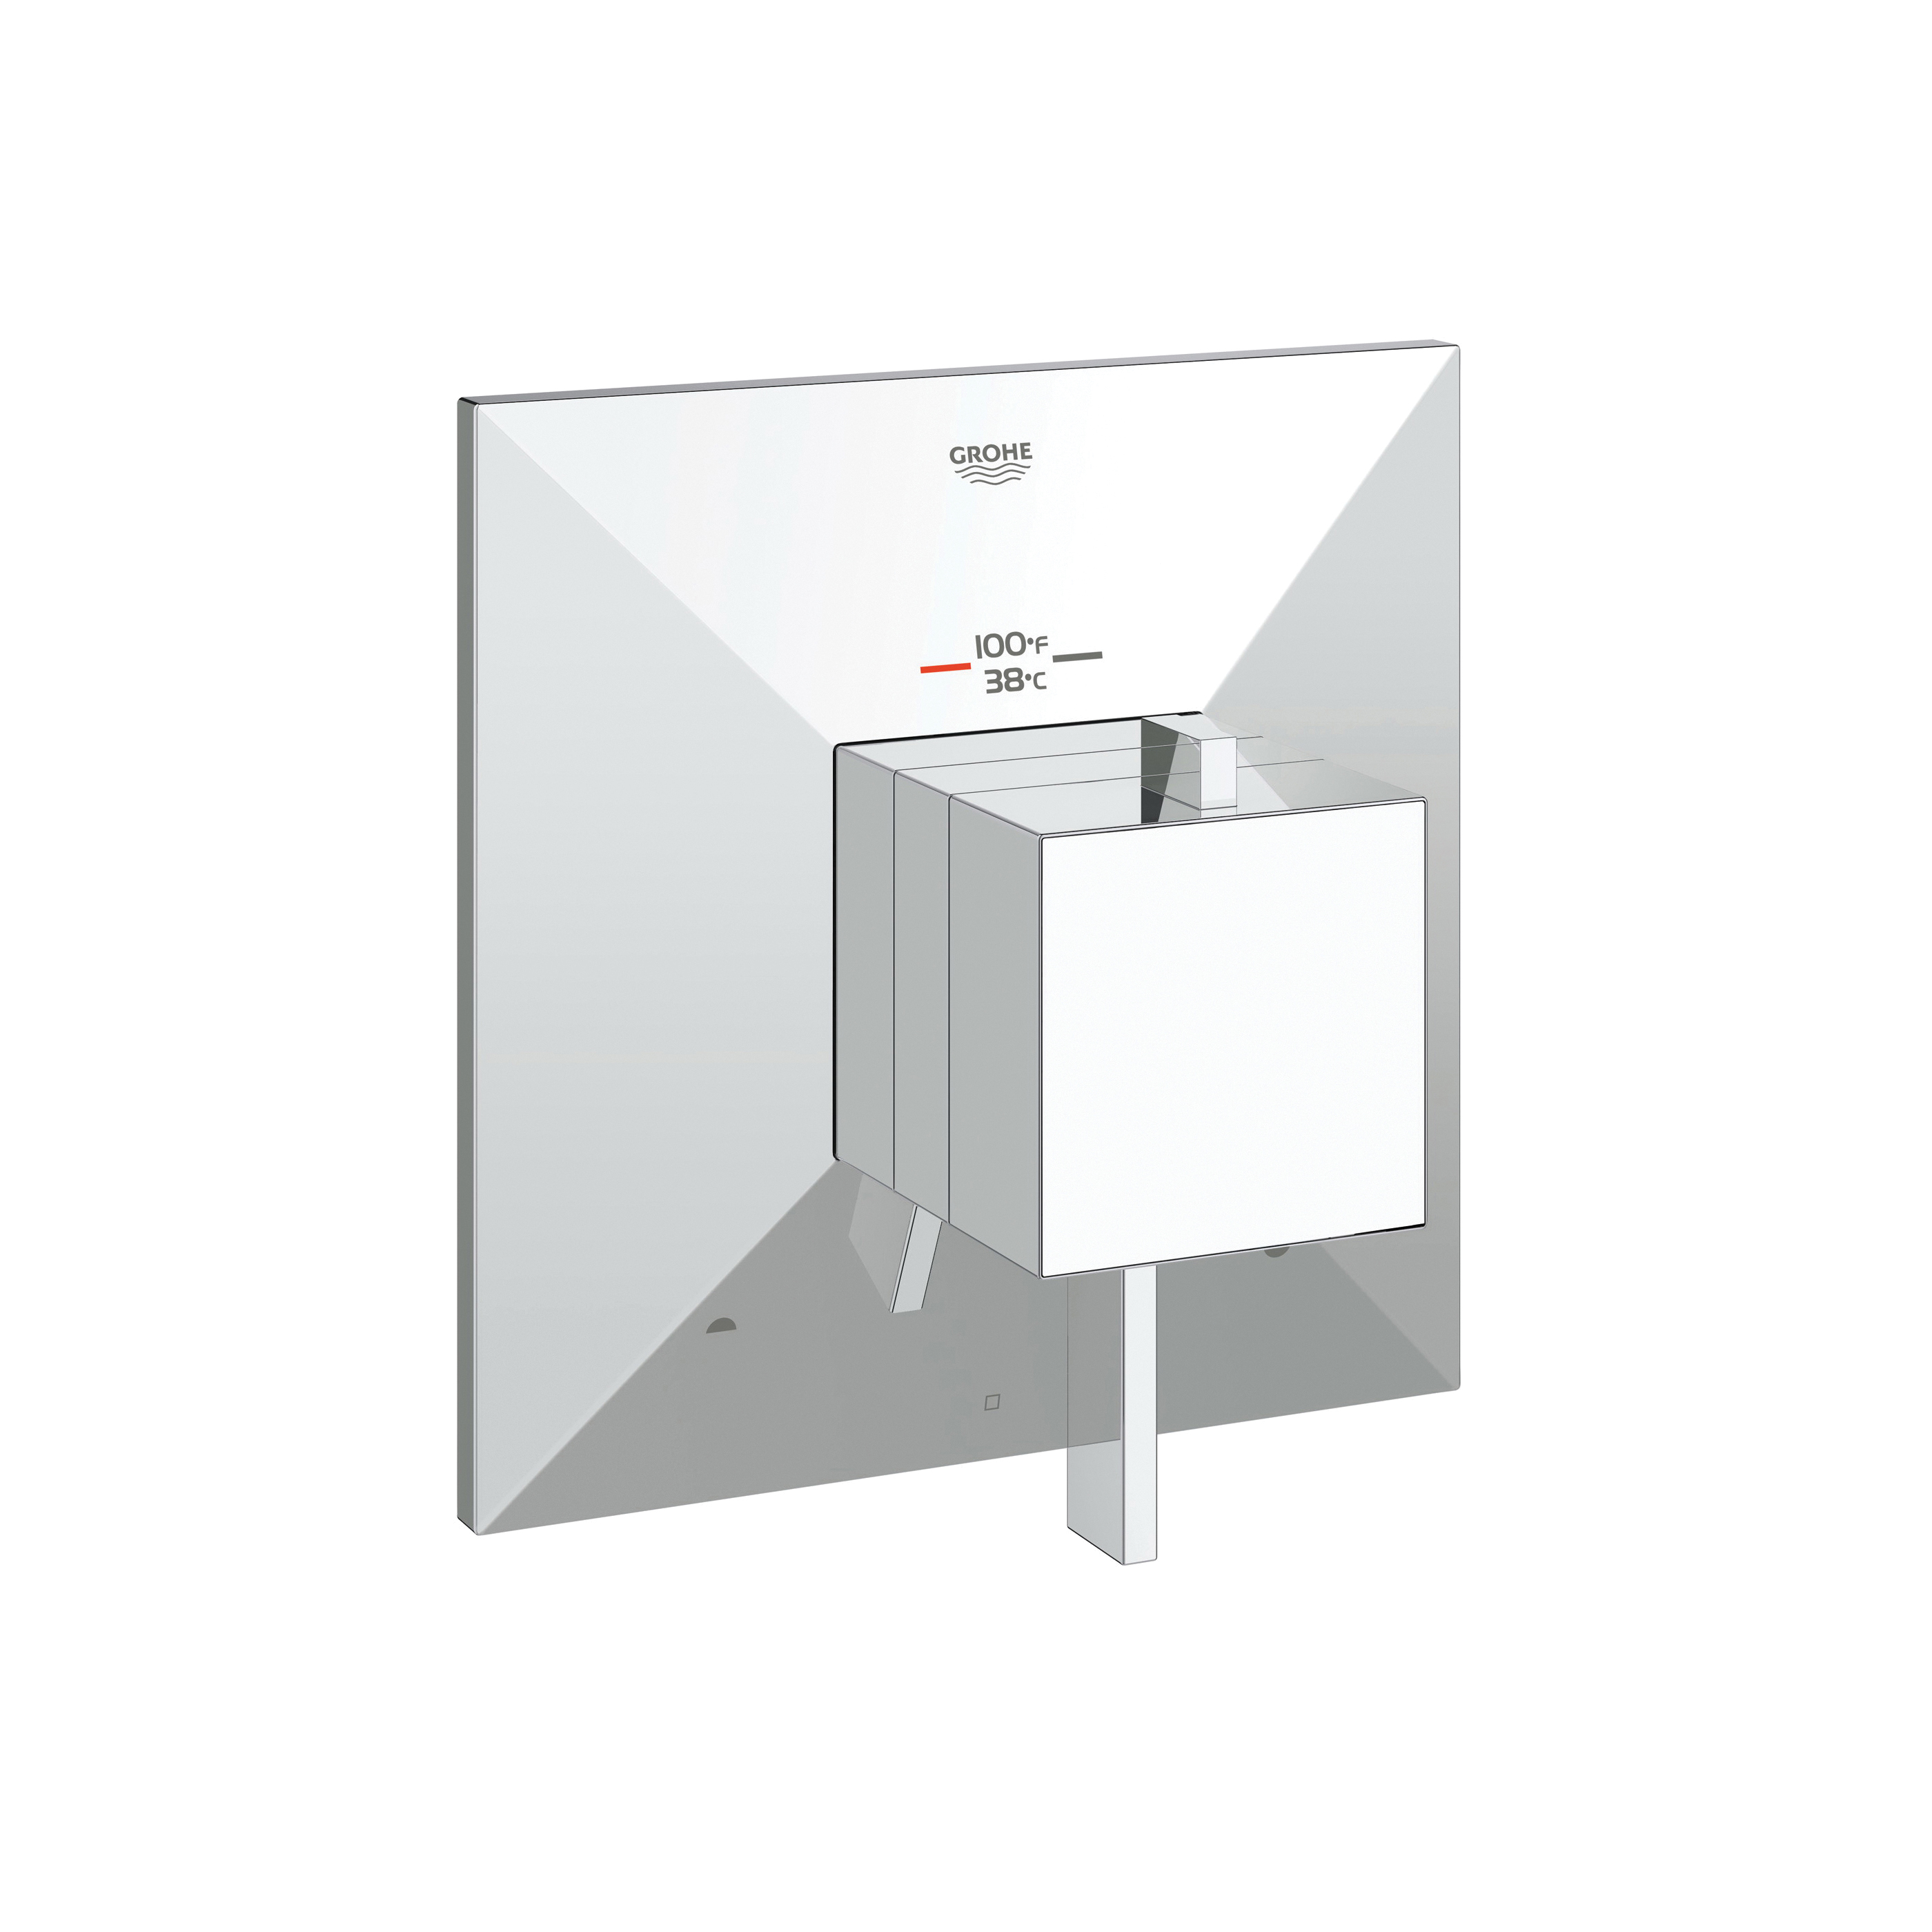 GROHE 19794000 Allure Brilliant 2-Function Trim, 3.2 to 6.3 gpm Shower, Hand Shower Yes/No: No, StarLight® Chrome Plated